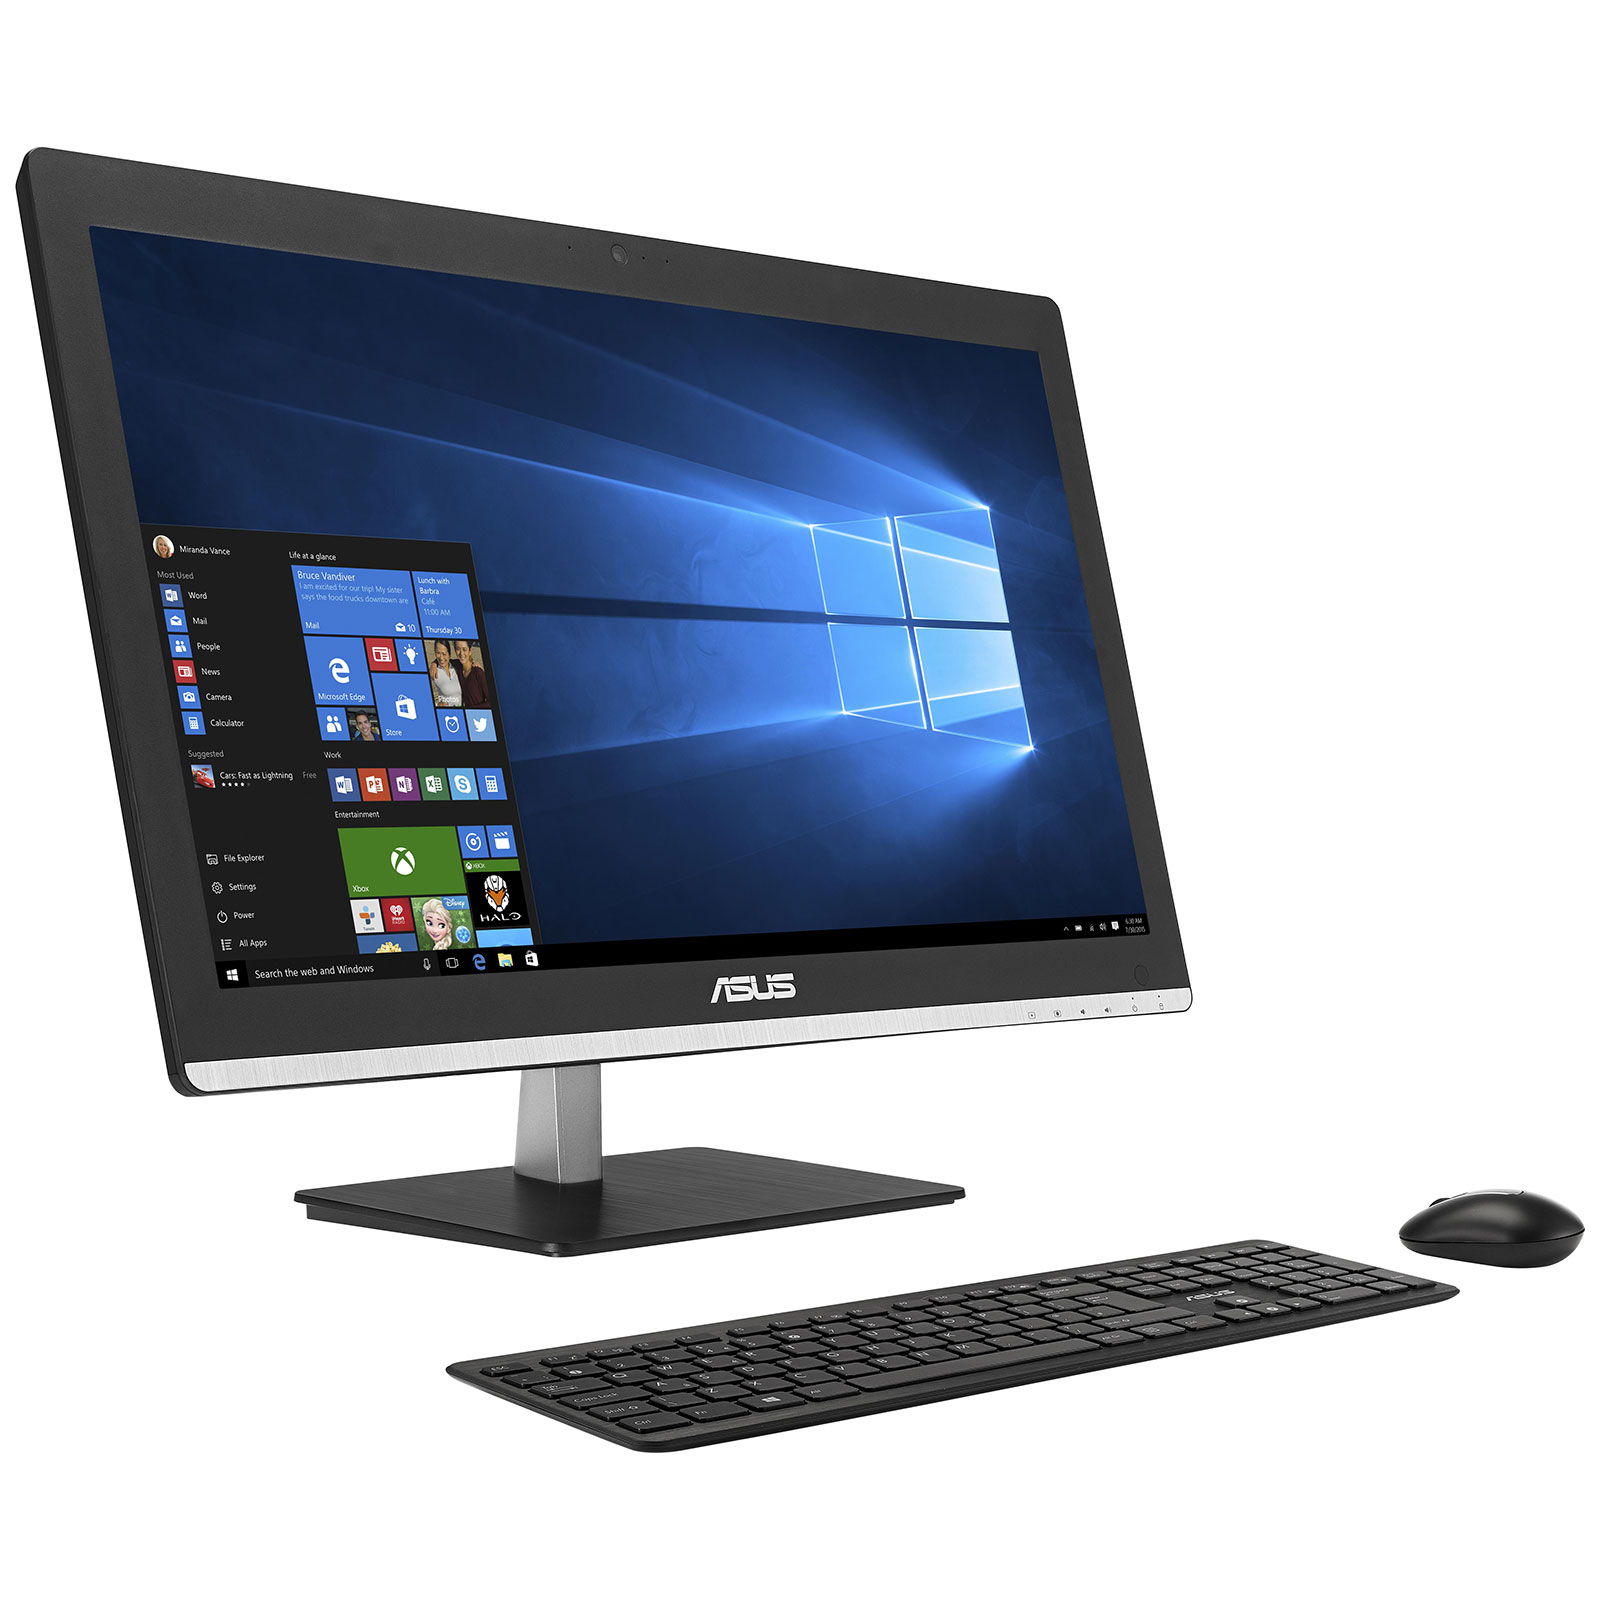 asus vivo aio v220ibuk bc033x pc de bureau asus sur. Black Bedroom Furniture Sets. Home Design Ideas